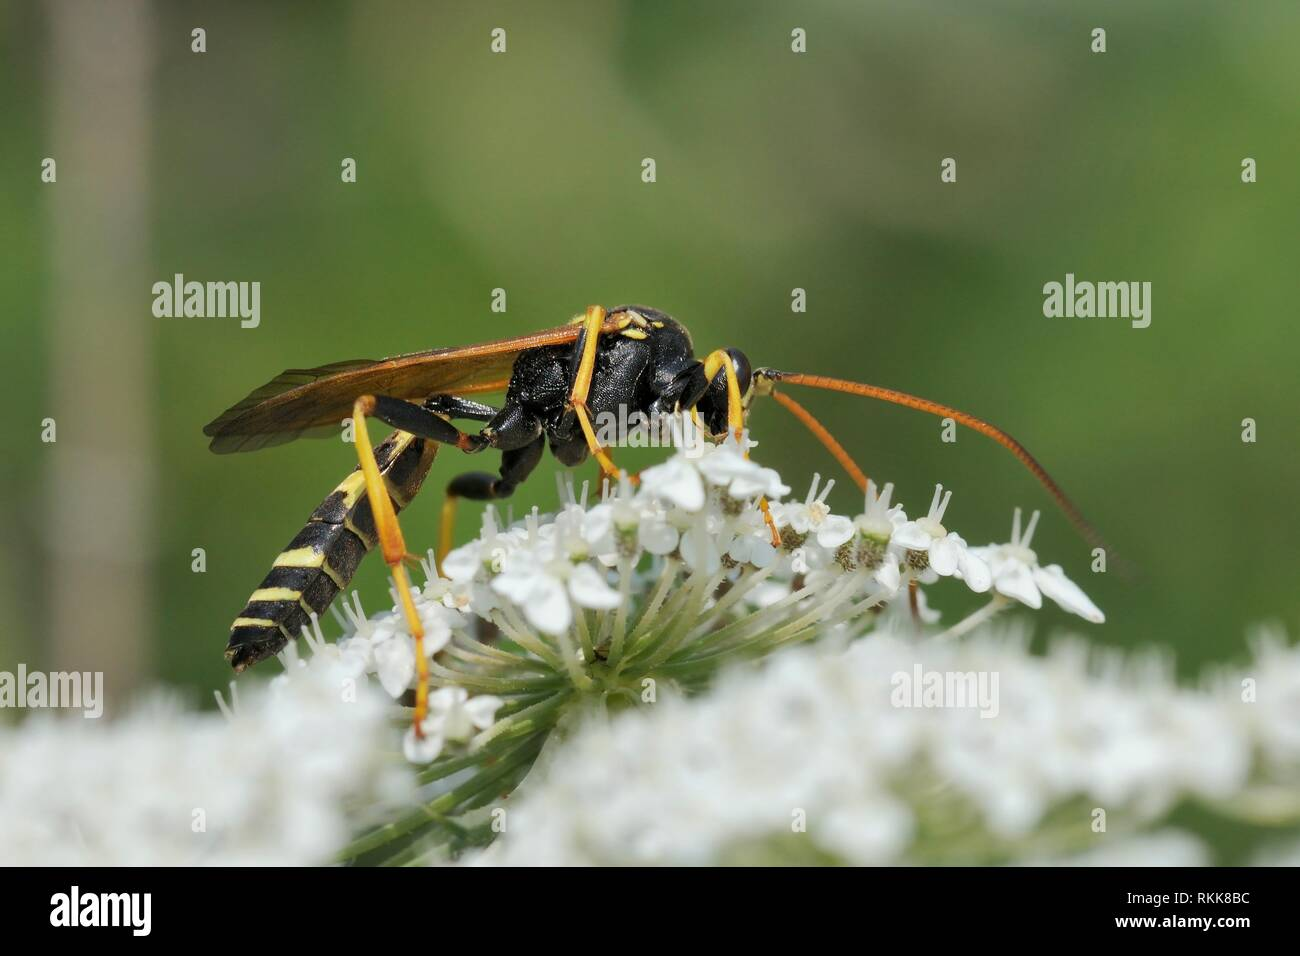 Male Ichneumon wasp (Diphyus mercatorius) feeding on Wild carrot / Queen Anne's lace (Daucus carota) flowers, Lesbos / Lesvos, Greece, June. - Stock Image